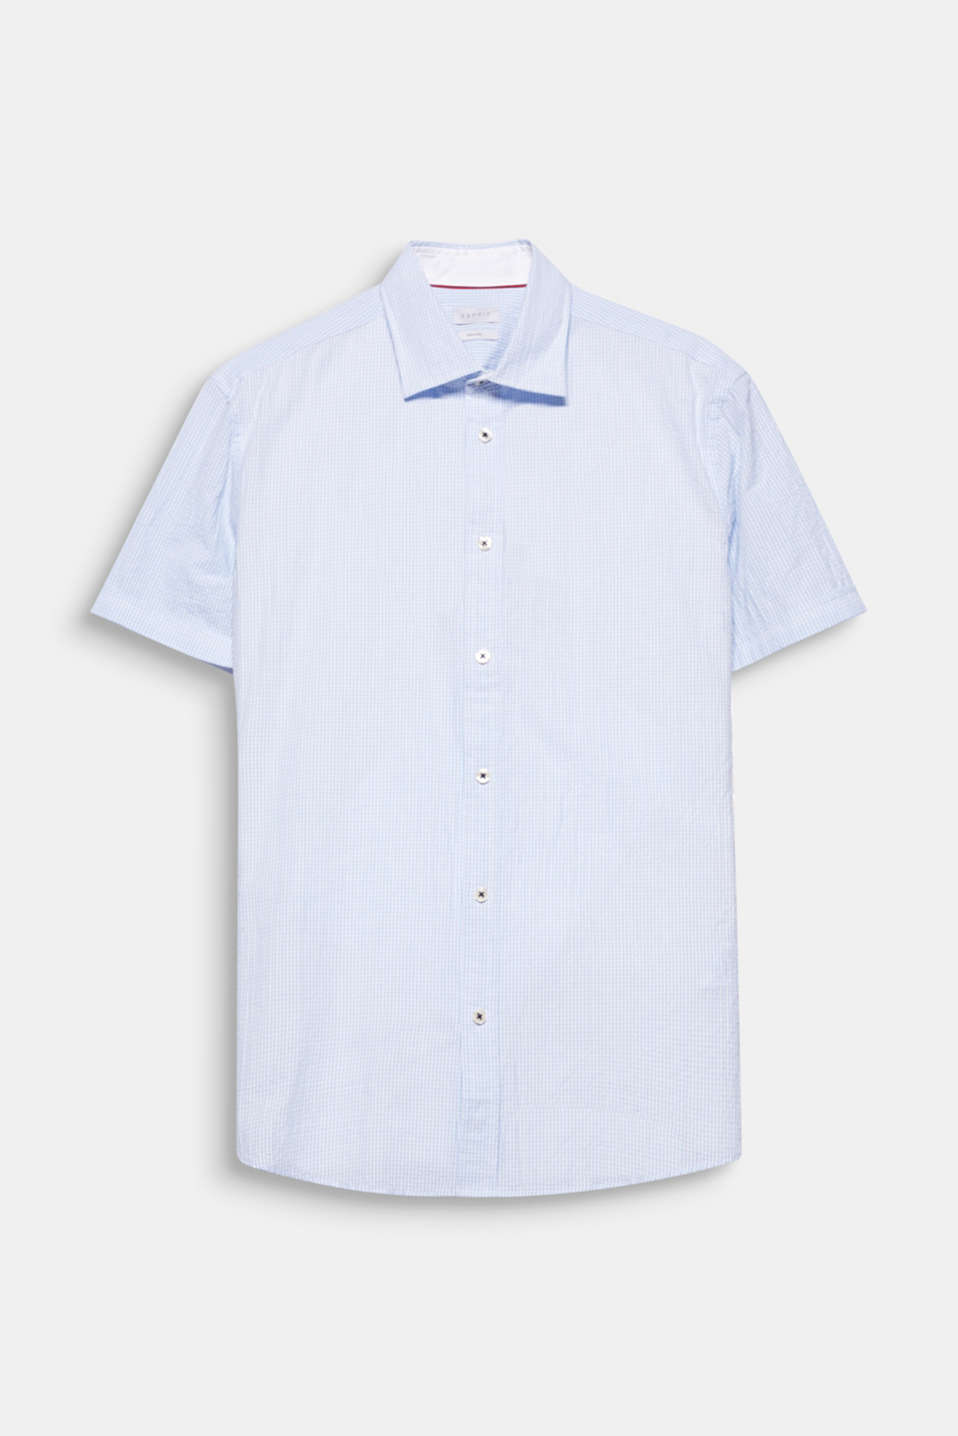 Perfect for the warmer seasons! The lightweight seersucker fabric gives this short sleeve shirt its summery character.